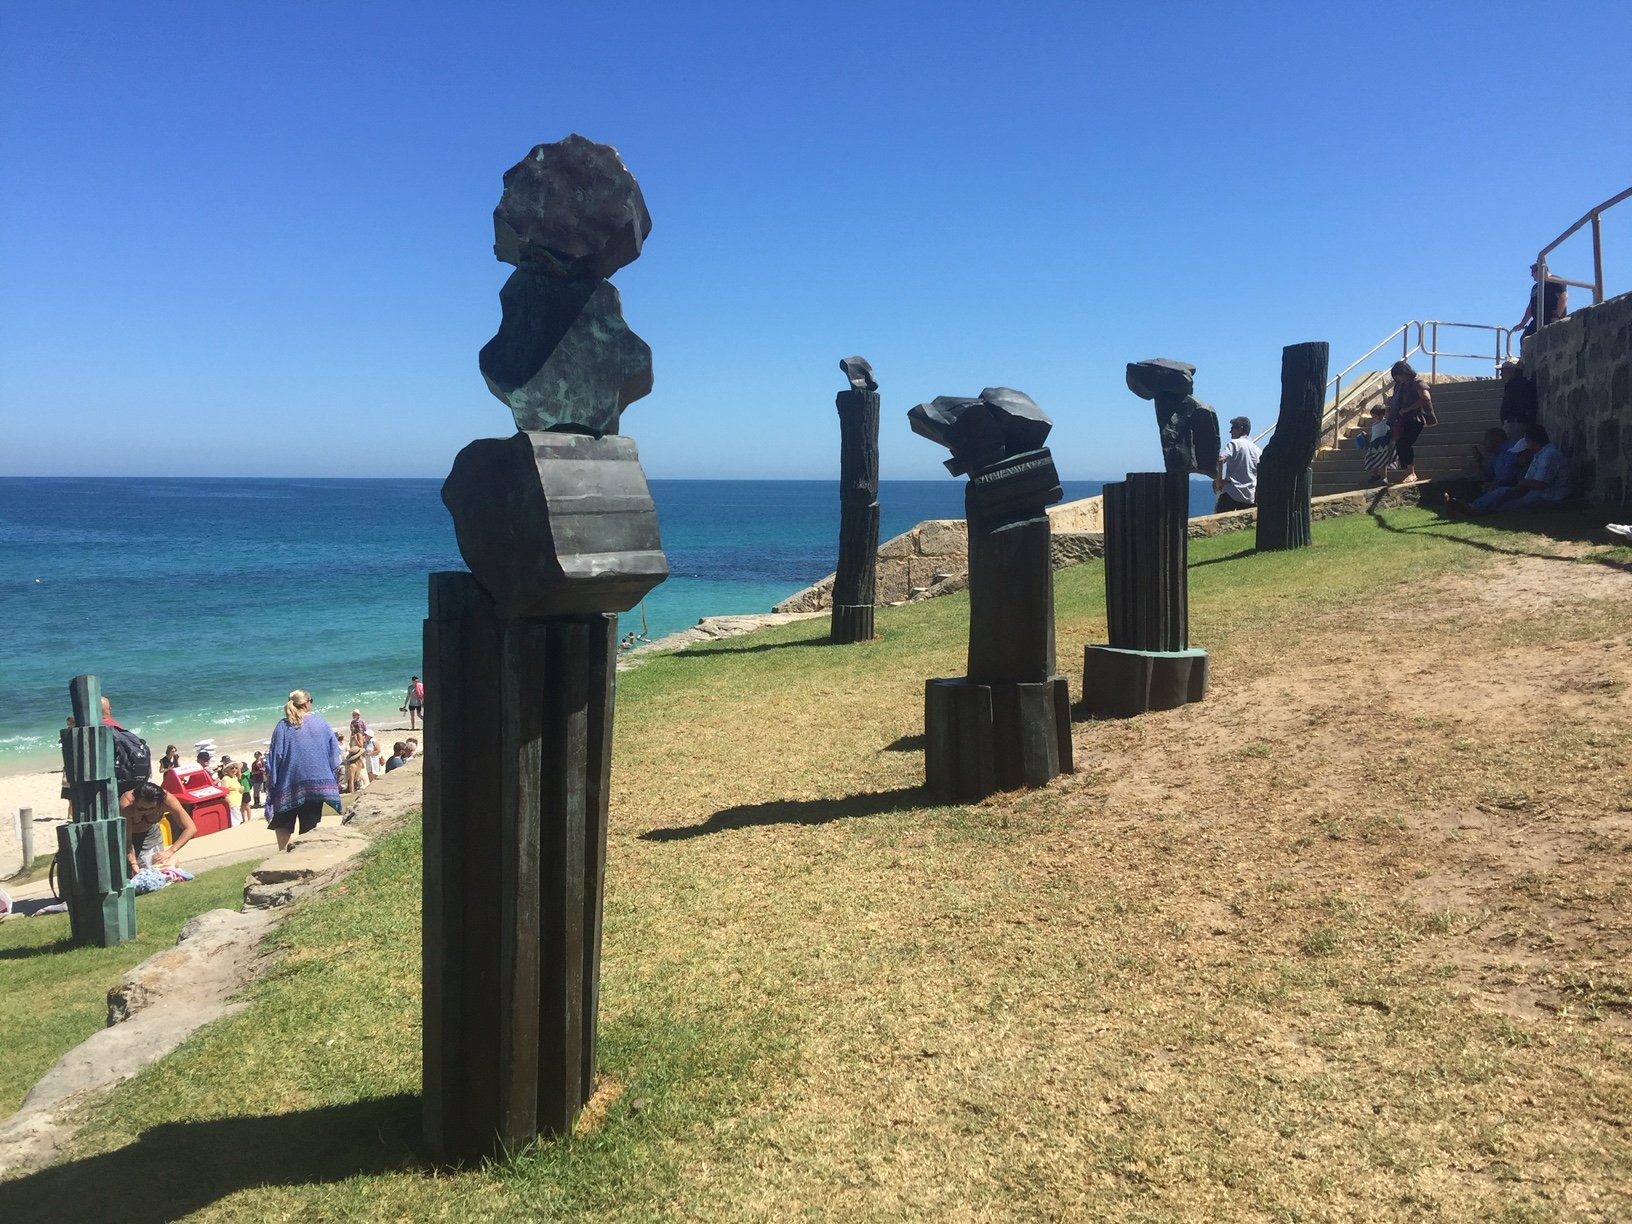 Peter Lundberg, Poets, Scholars and Thieves, Sculpture by the Sea, Cottesloe 2019 ©Peter Lundberg